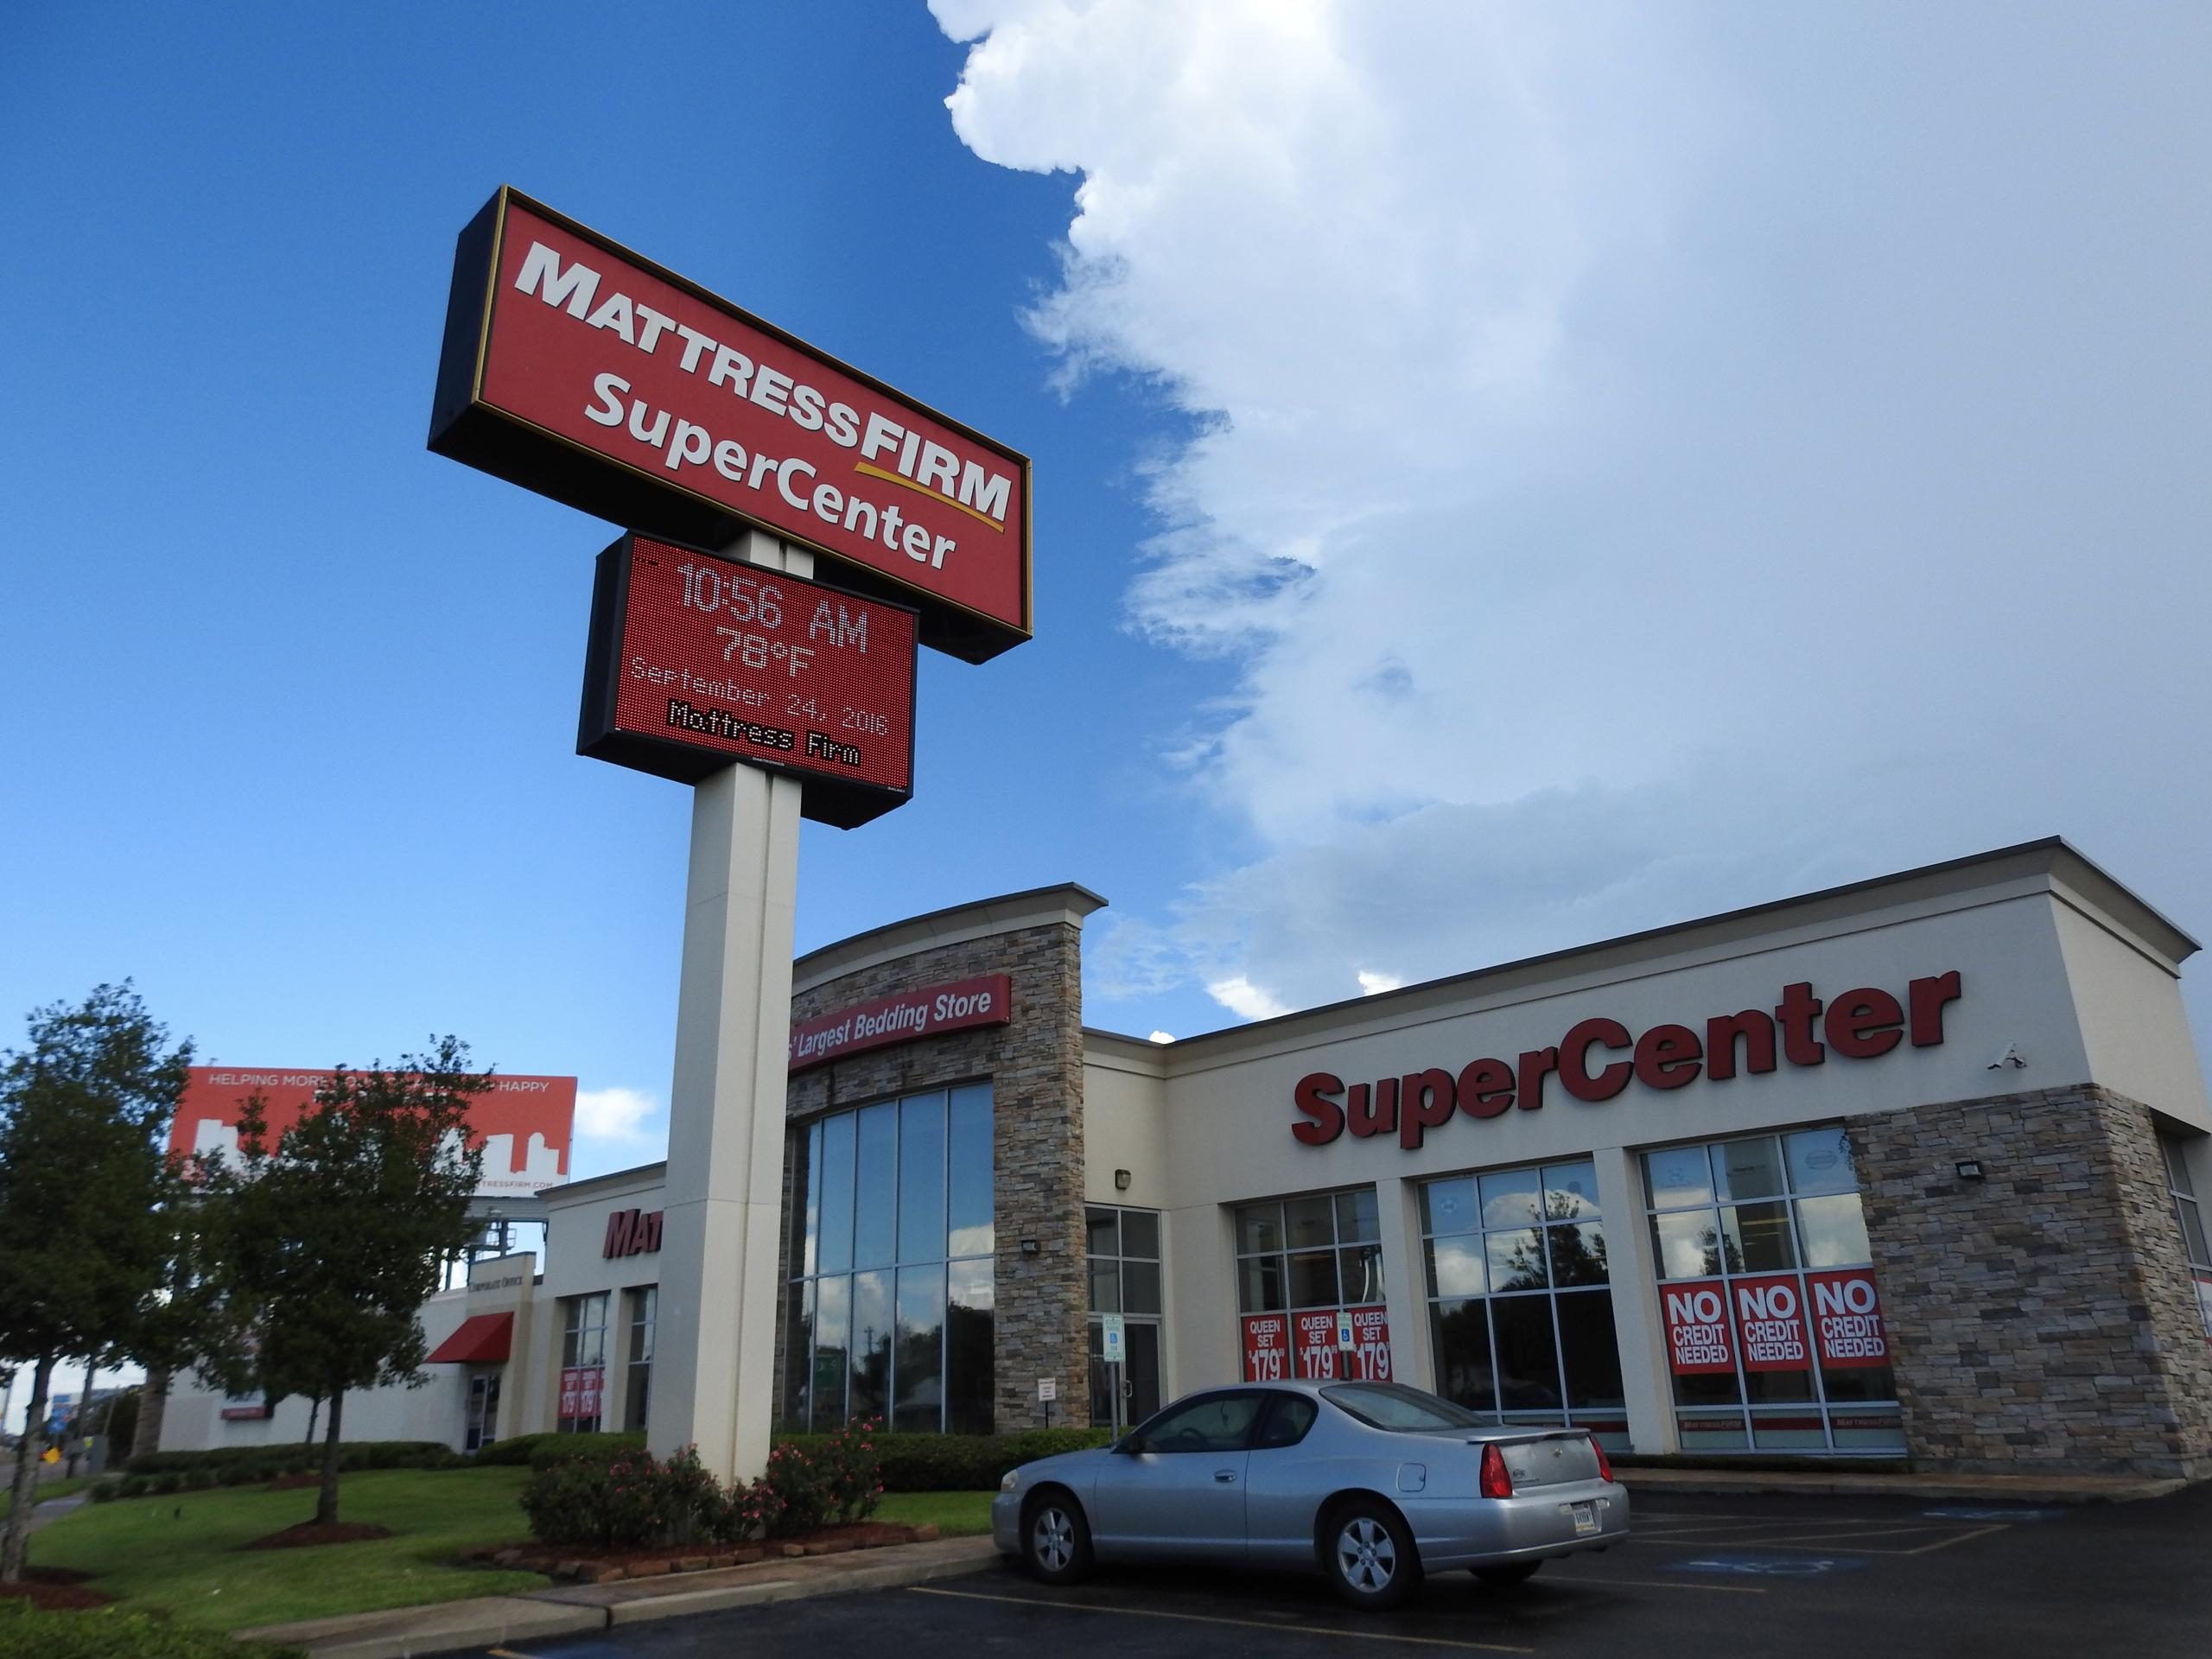 Mattress Firm's flagship store in Houston, Texas.